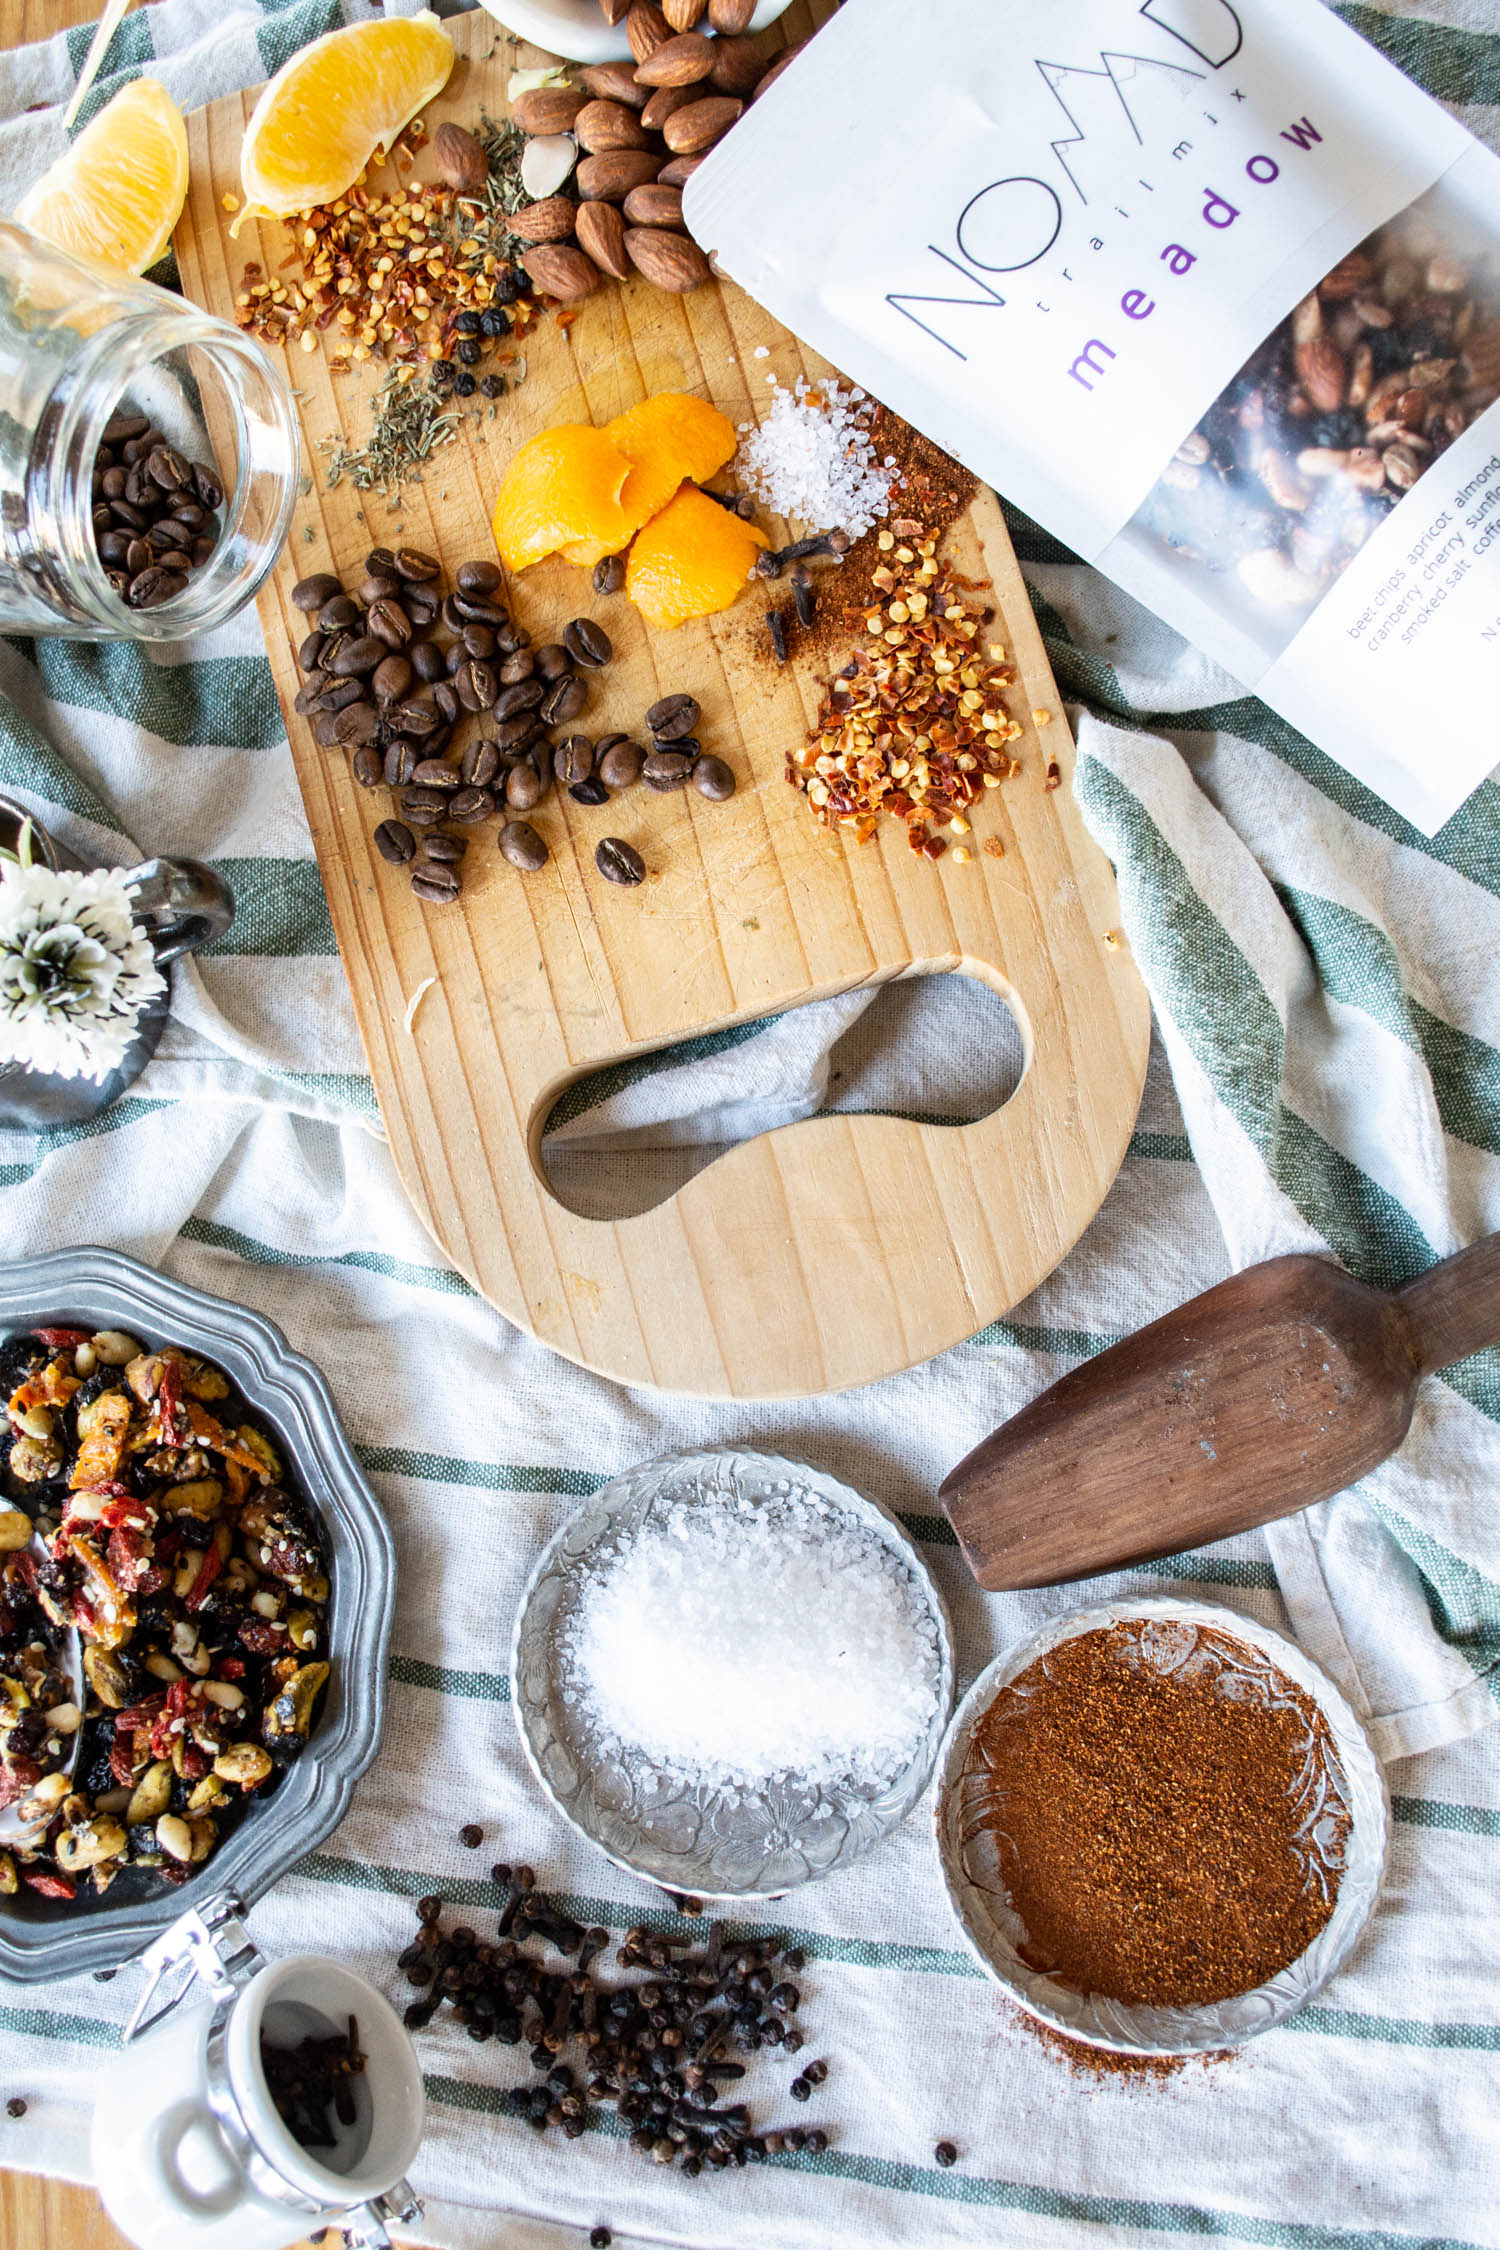 Raw food ingredients arranged on a table. food photography